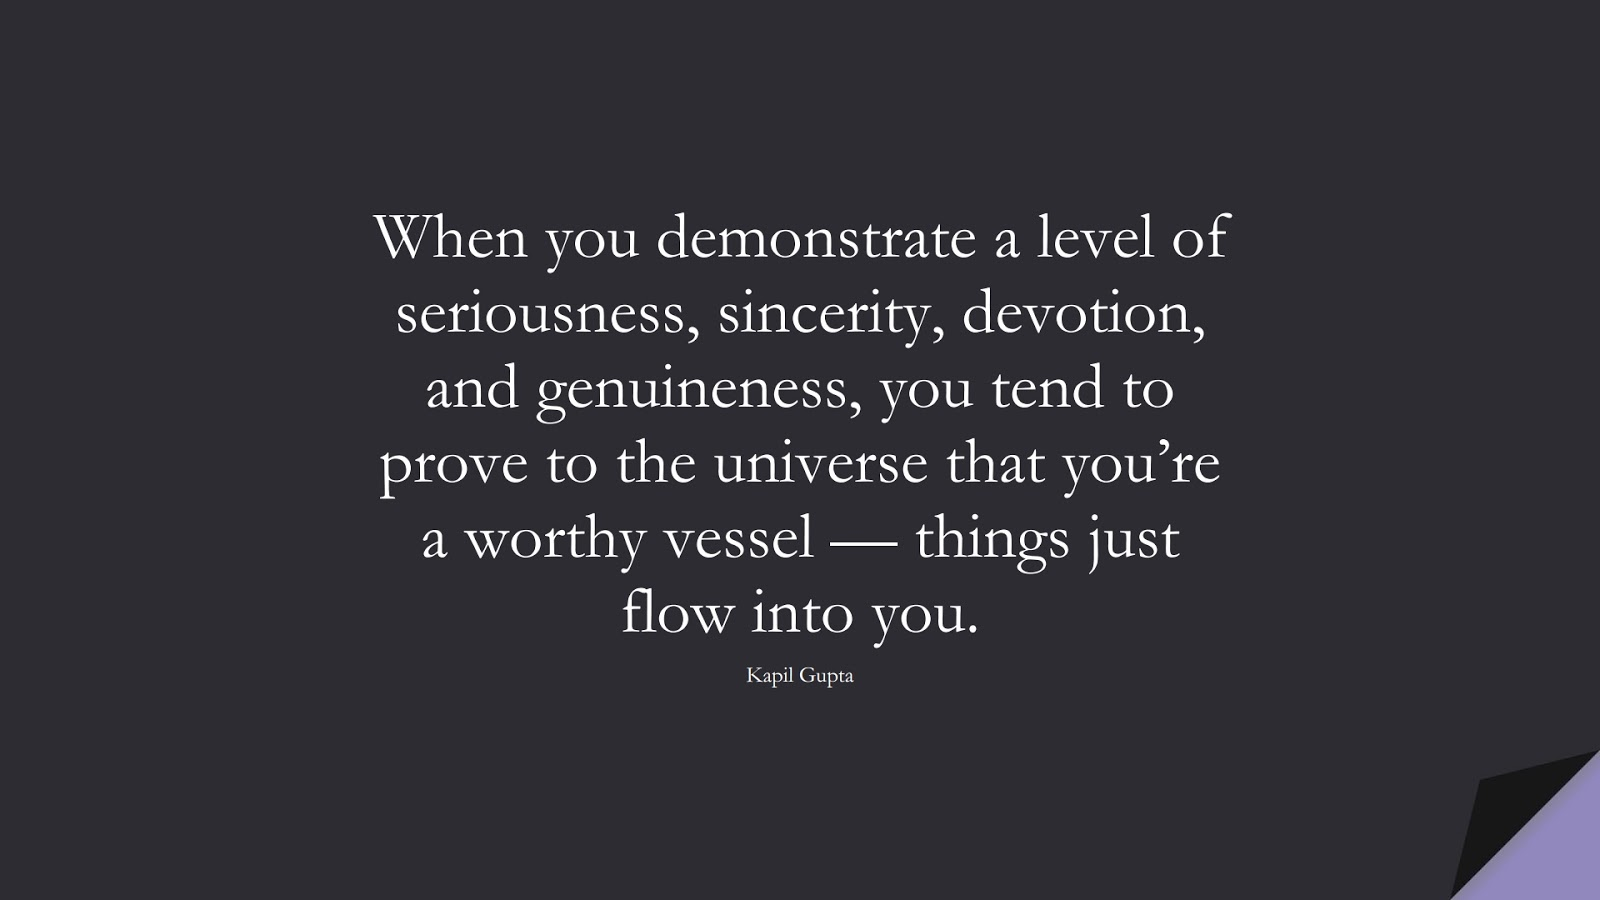 When you demonstrate a level of seriousness, sincerity, devotion, and genuineness, you tend to prove to the universe that you're a worthy vessel — things just flow into you. (Kapil Gupta);  #NeverGiveUpQuotes